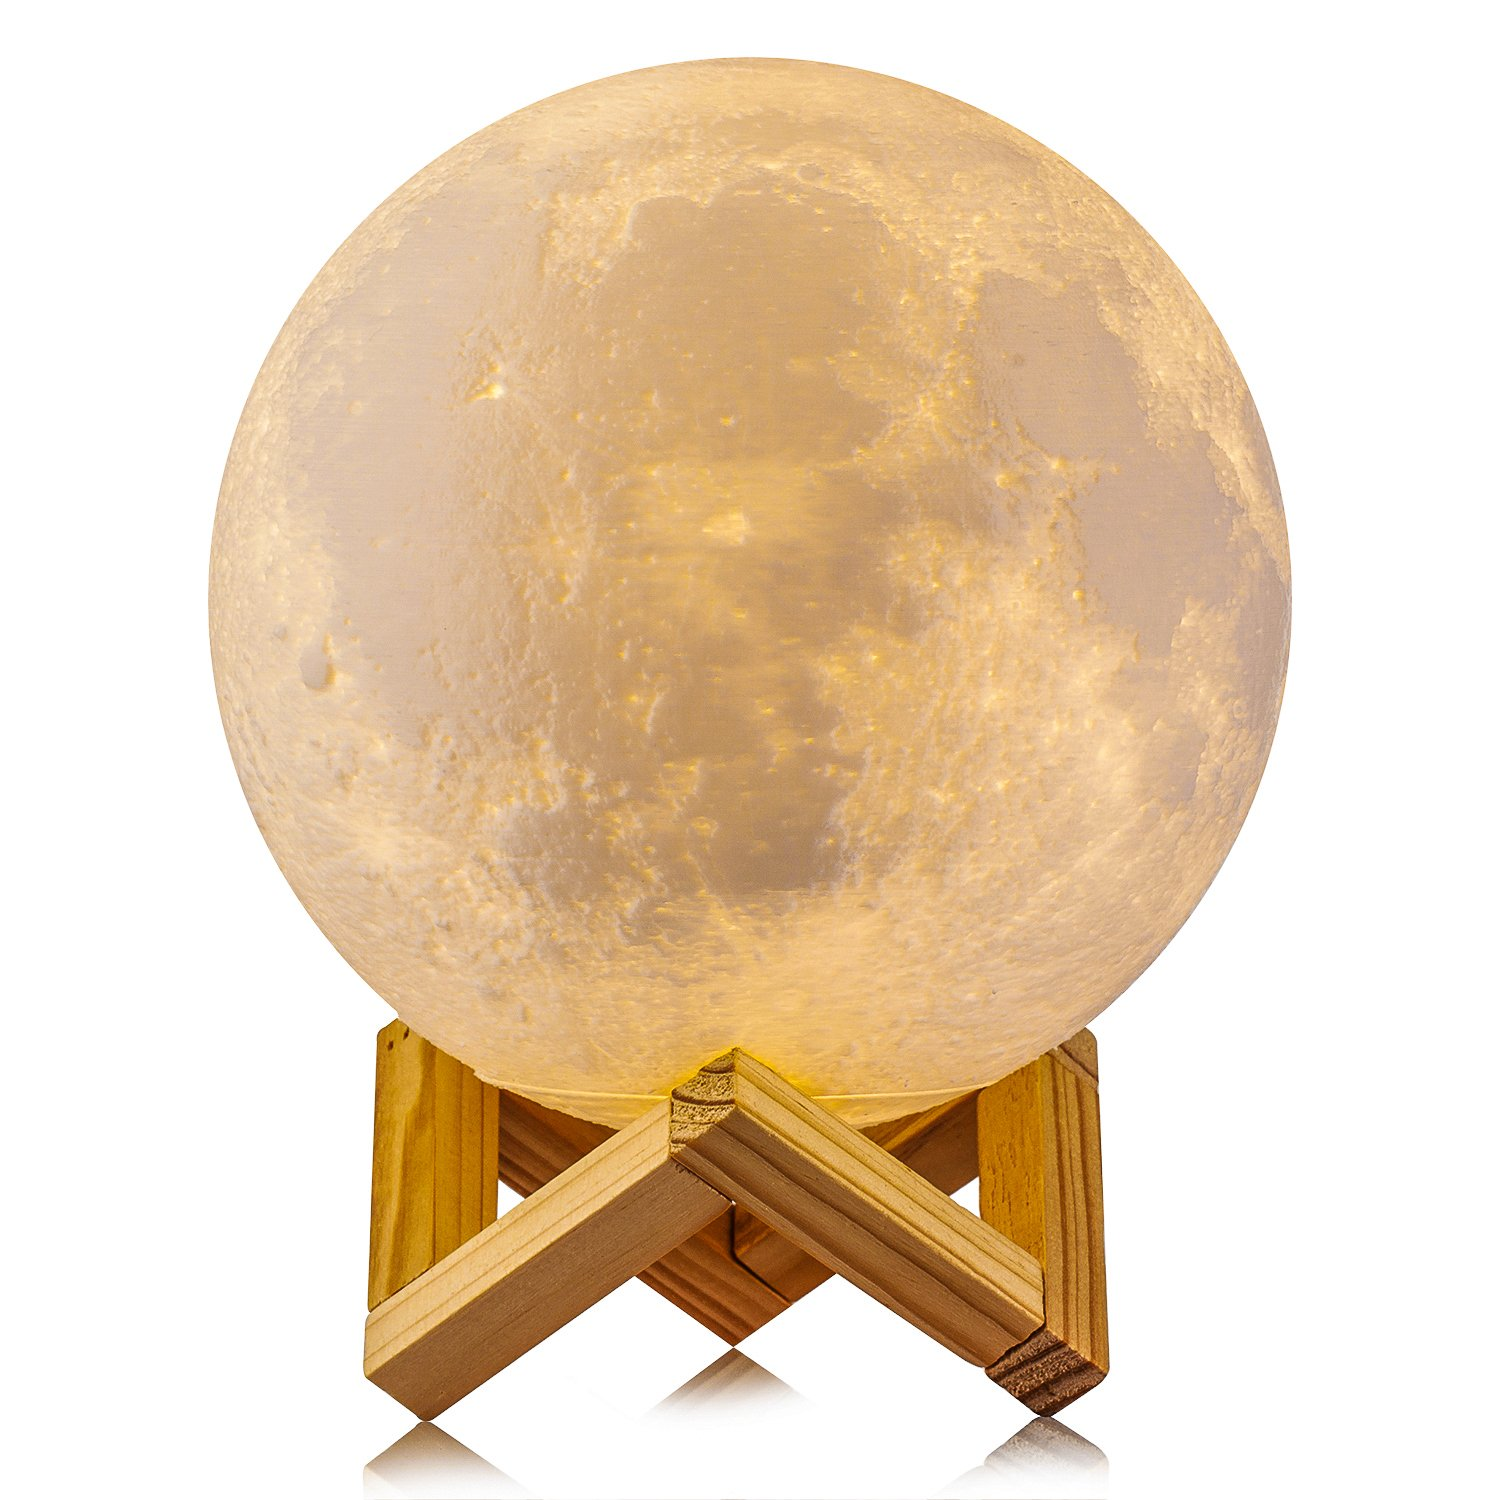 Gahaya 5.9''/15cm Moon Lamp, 3D Printed Light, Touch Control, Stepless Dimmable, Warm White (3000K) and Cool White (6000K), PLA Material, USB Recharge